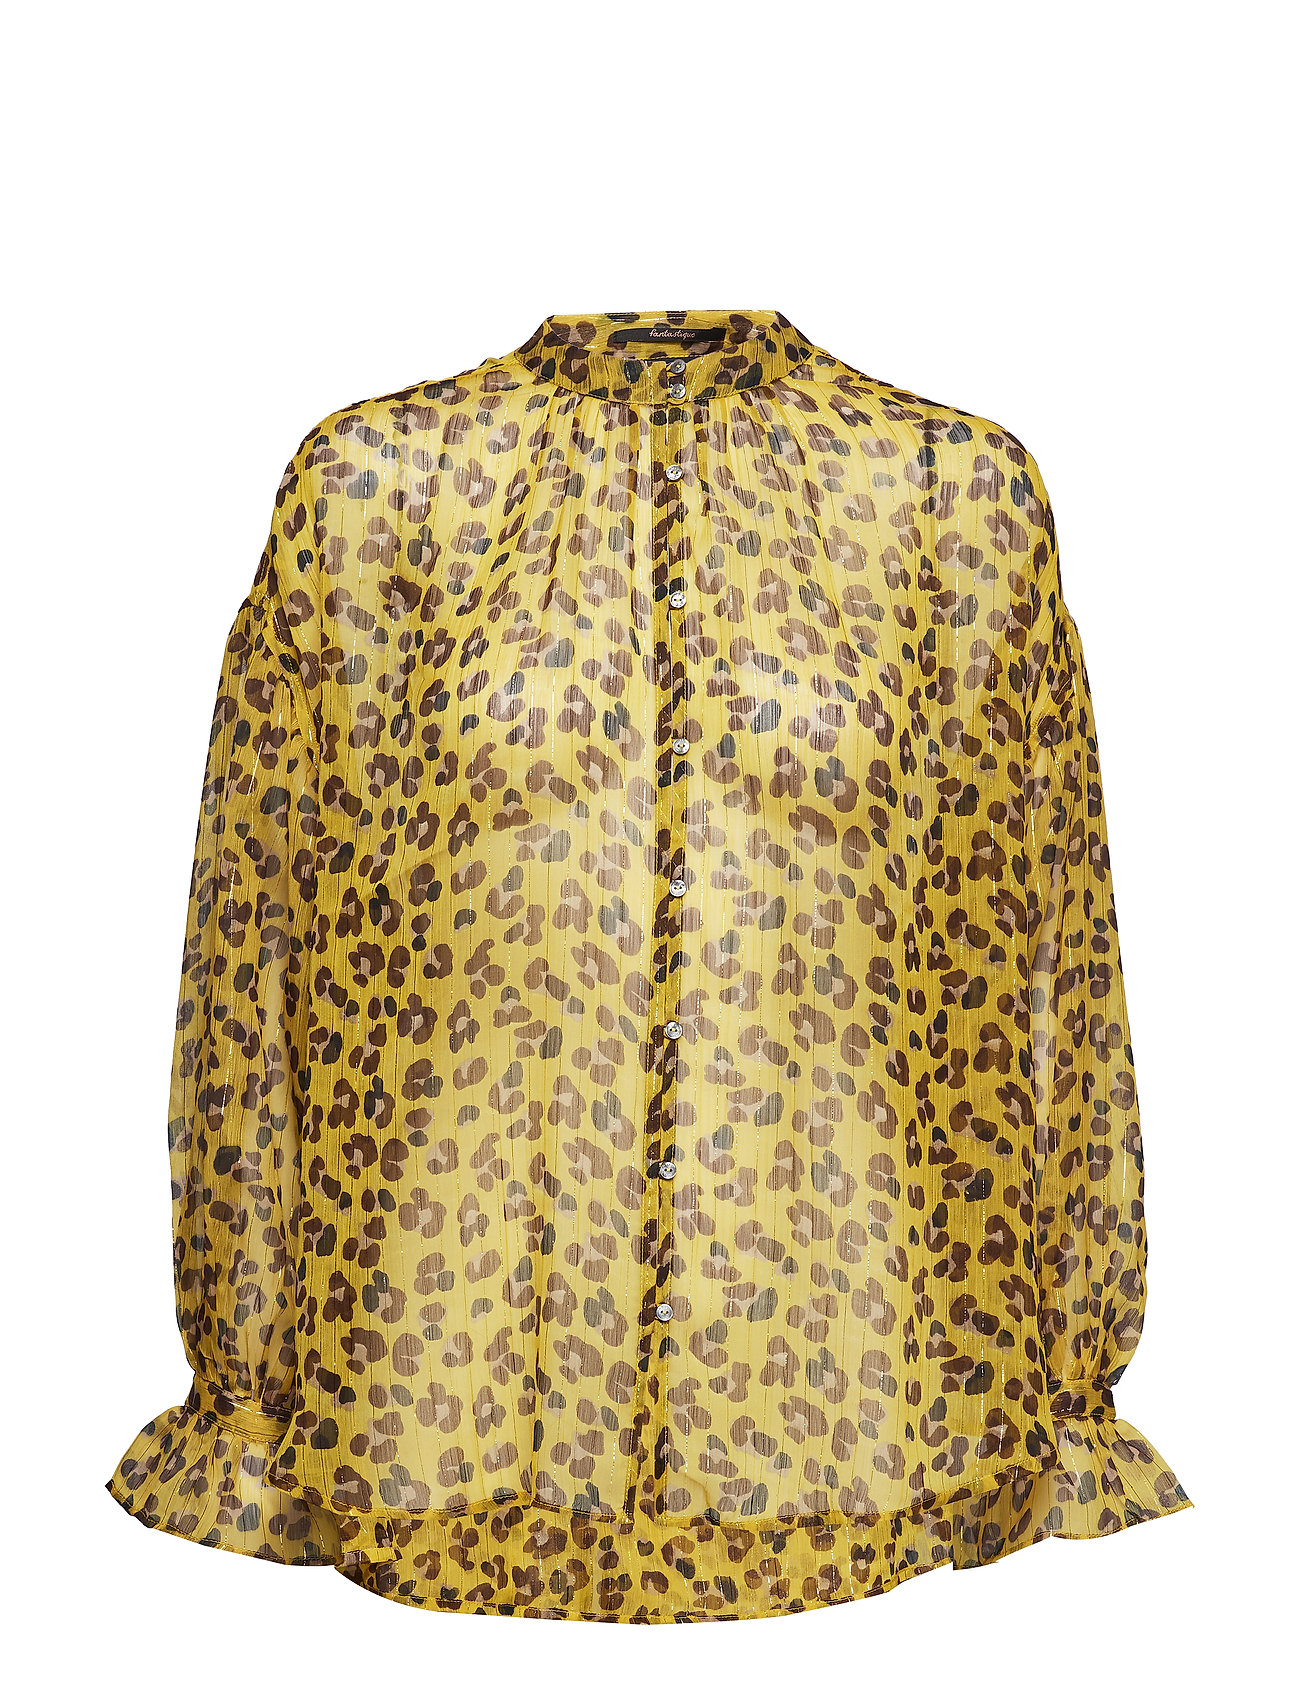 Scotch & Soda Voluminous sheer printed blouse with lurex - COMBO A